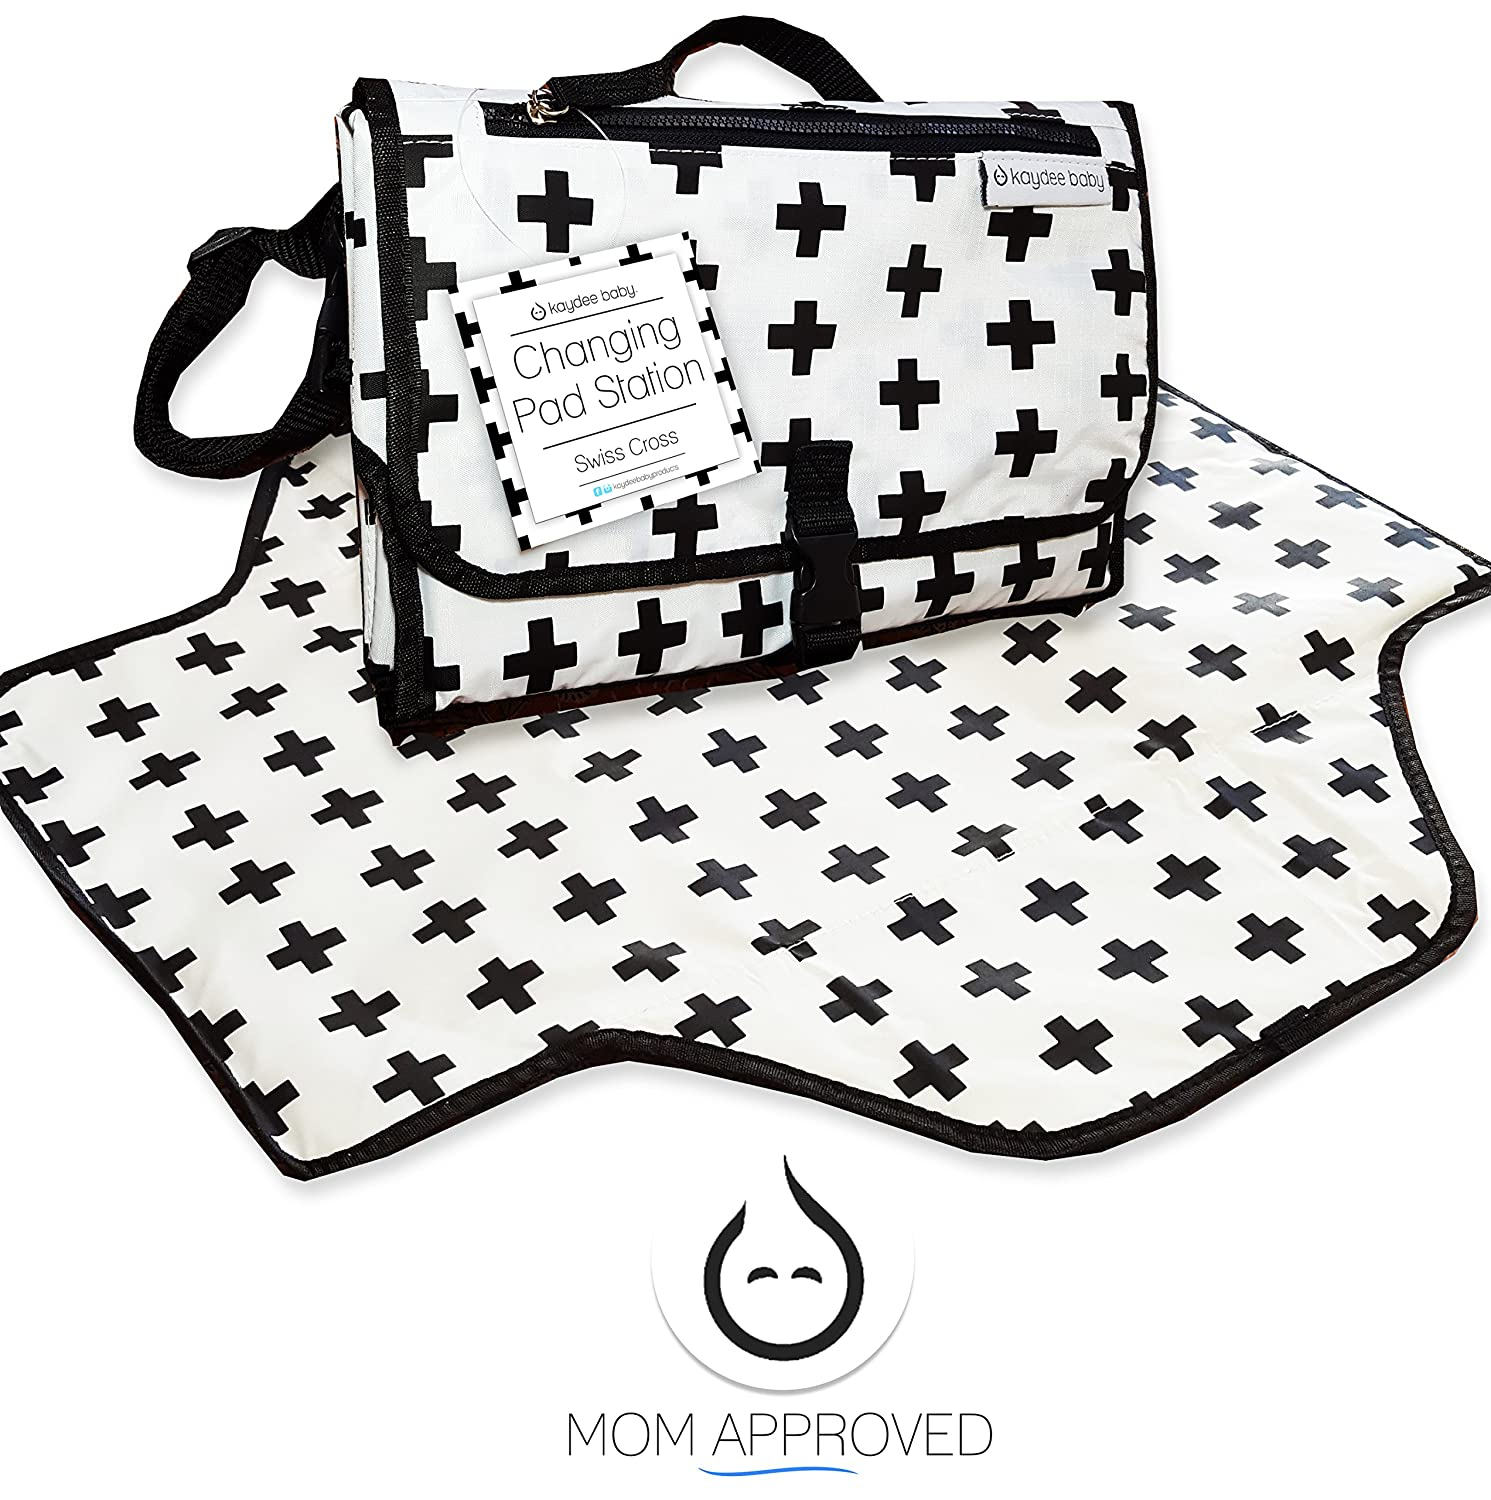 Kaydee Baby Portable Swiss Cross Diaper Changing Pad Station with Pockets, Black/White